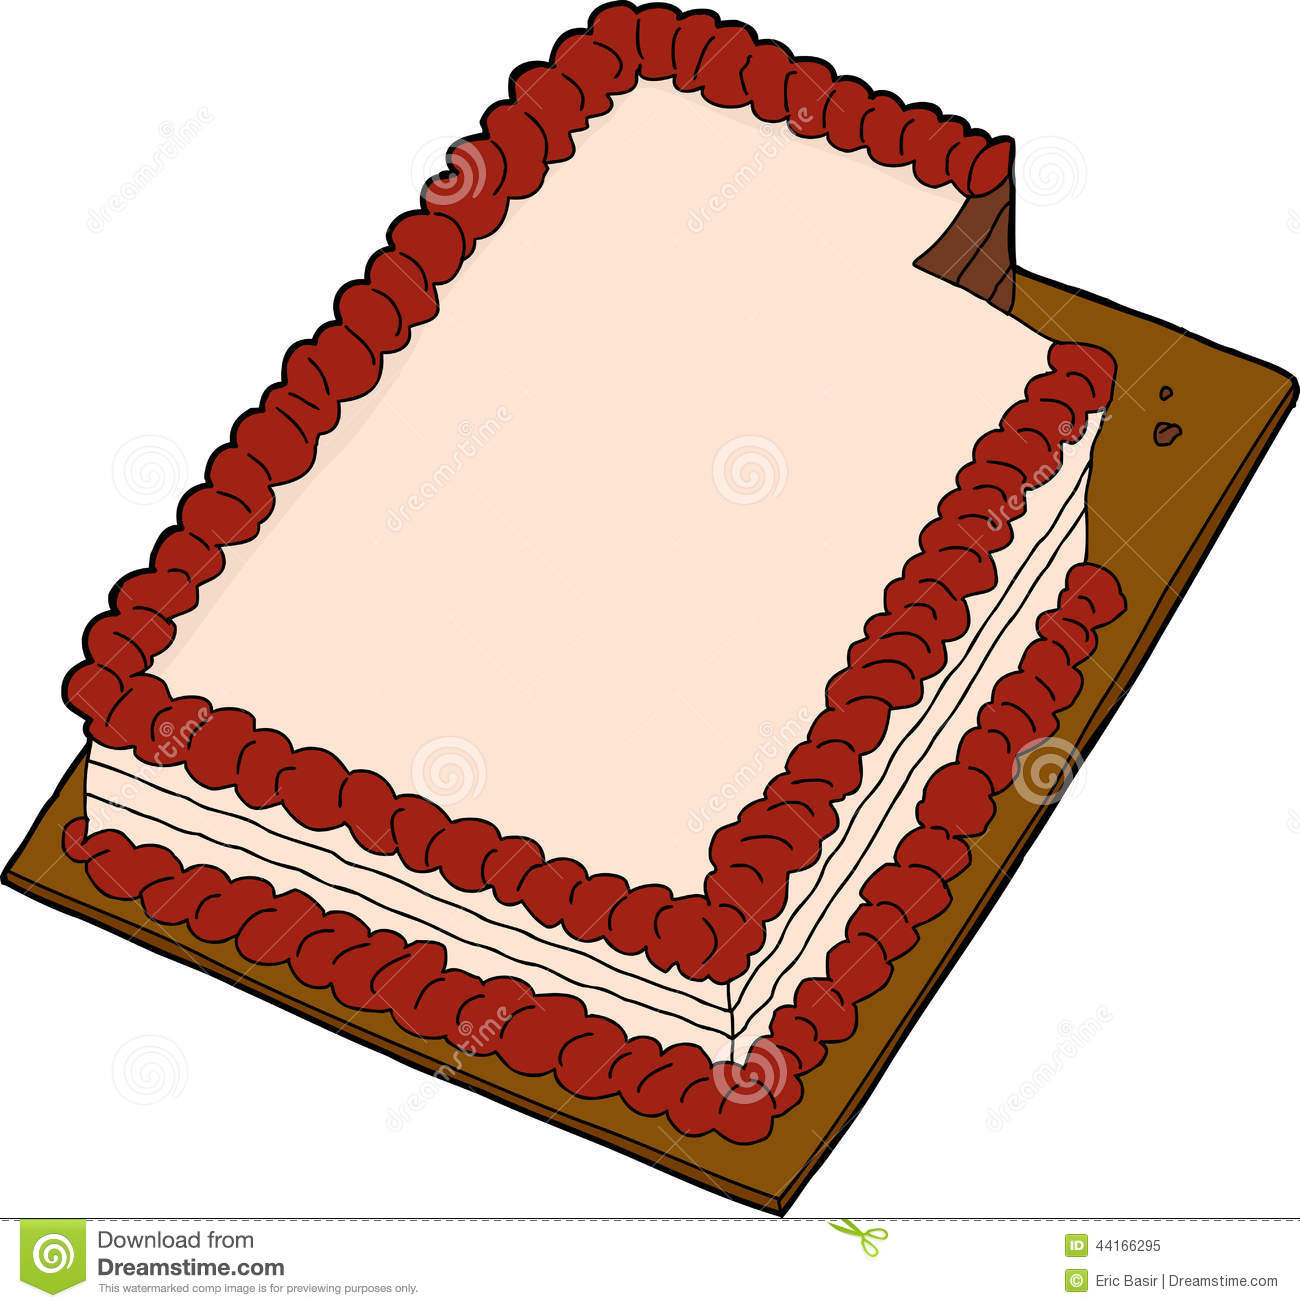 Sheet cake clipart jpg royalty free library Sheet Cake Clipart - Clipart Kid jpg royalty free library